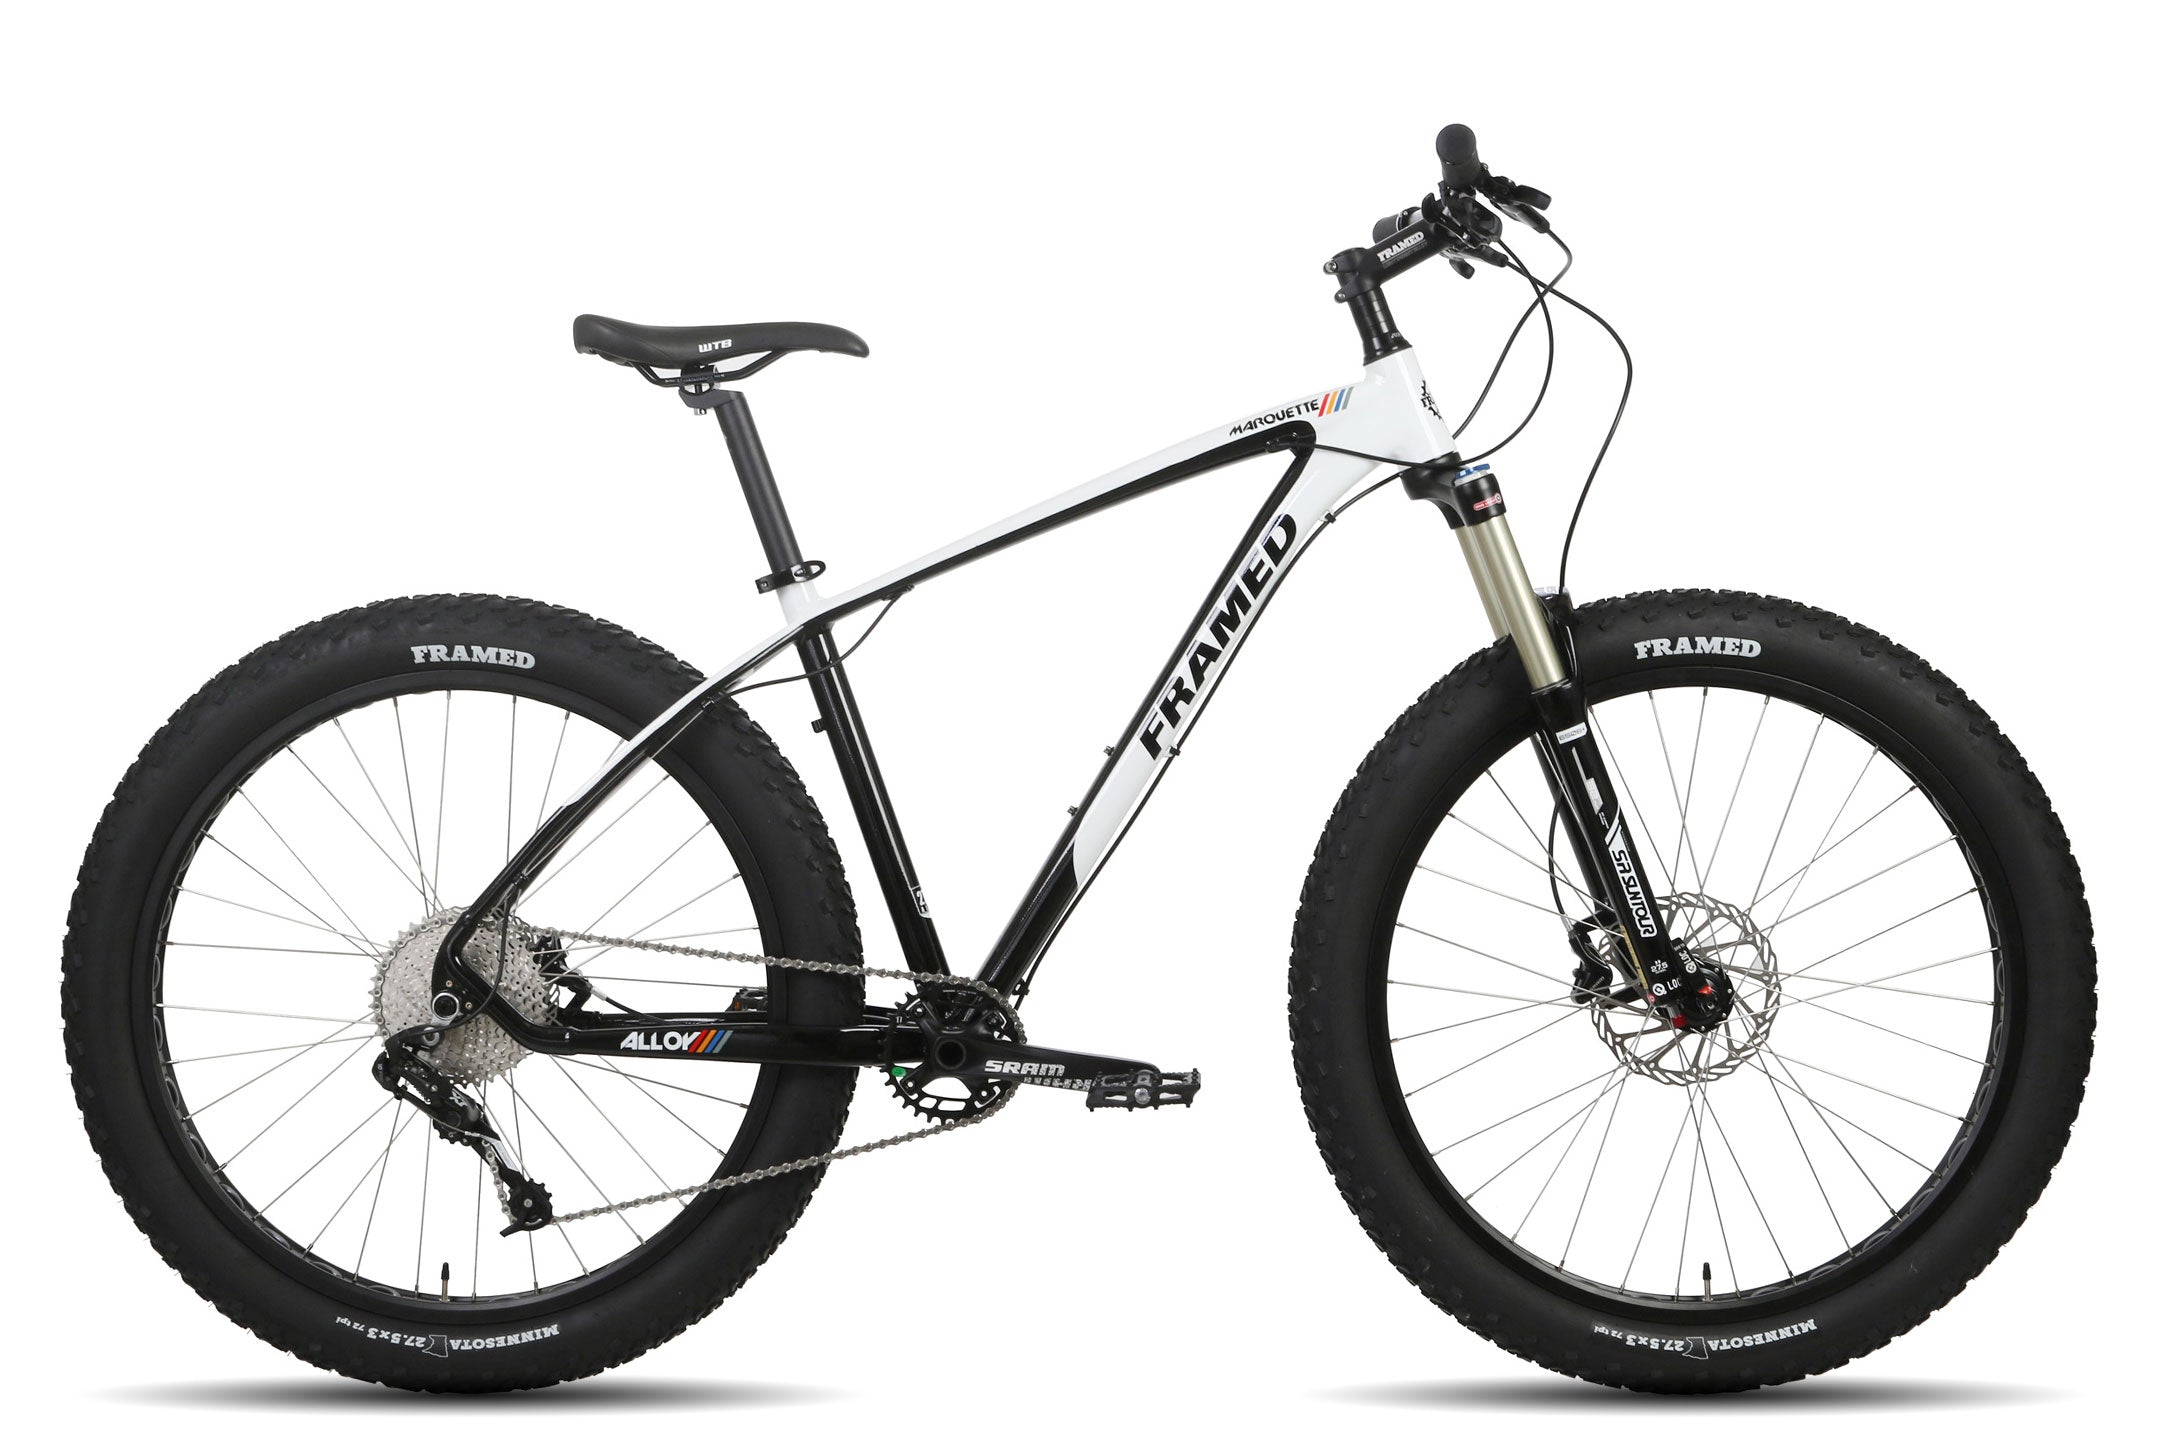 Marquette X7 Mountain Bike 27.5+